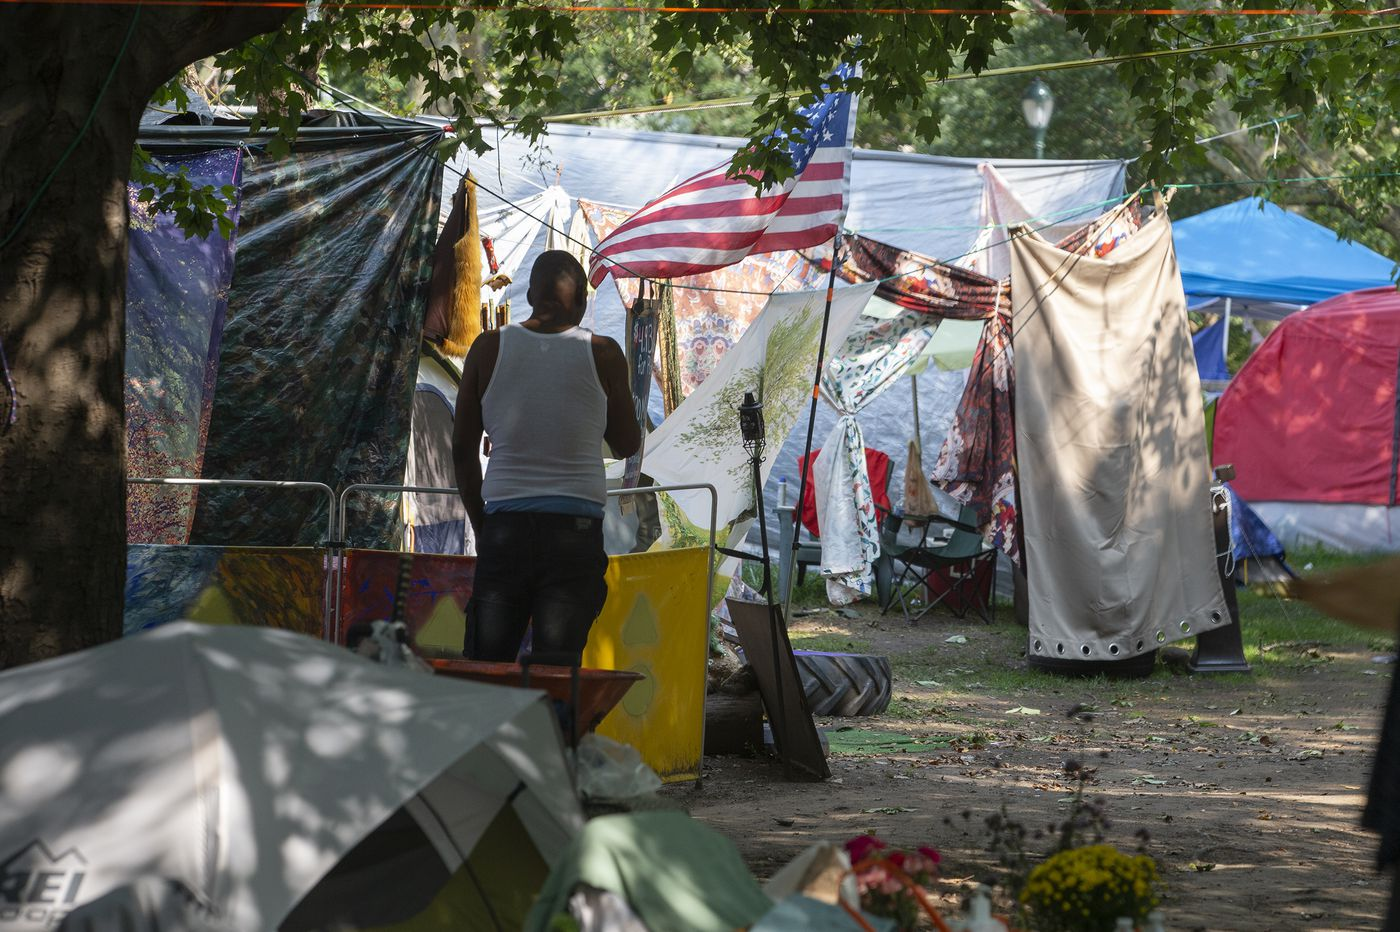 Instead of clearing homeless encampments, city leaders should create plans for permanent housing | Opinion